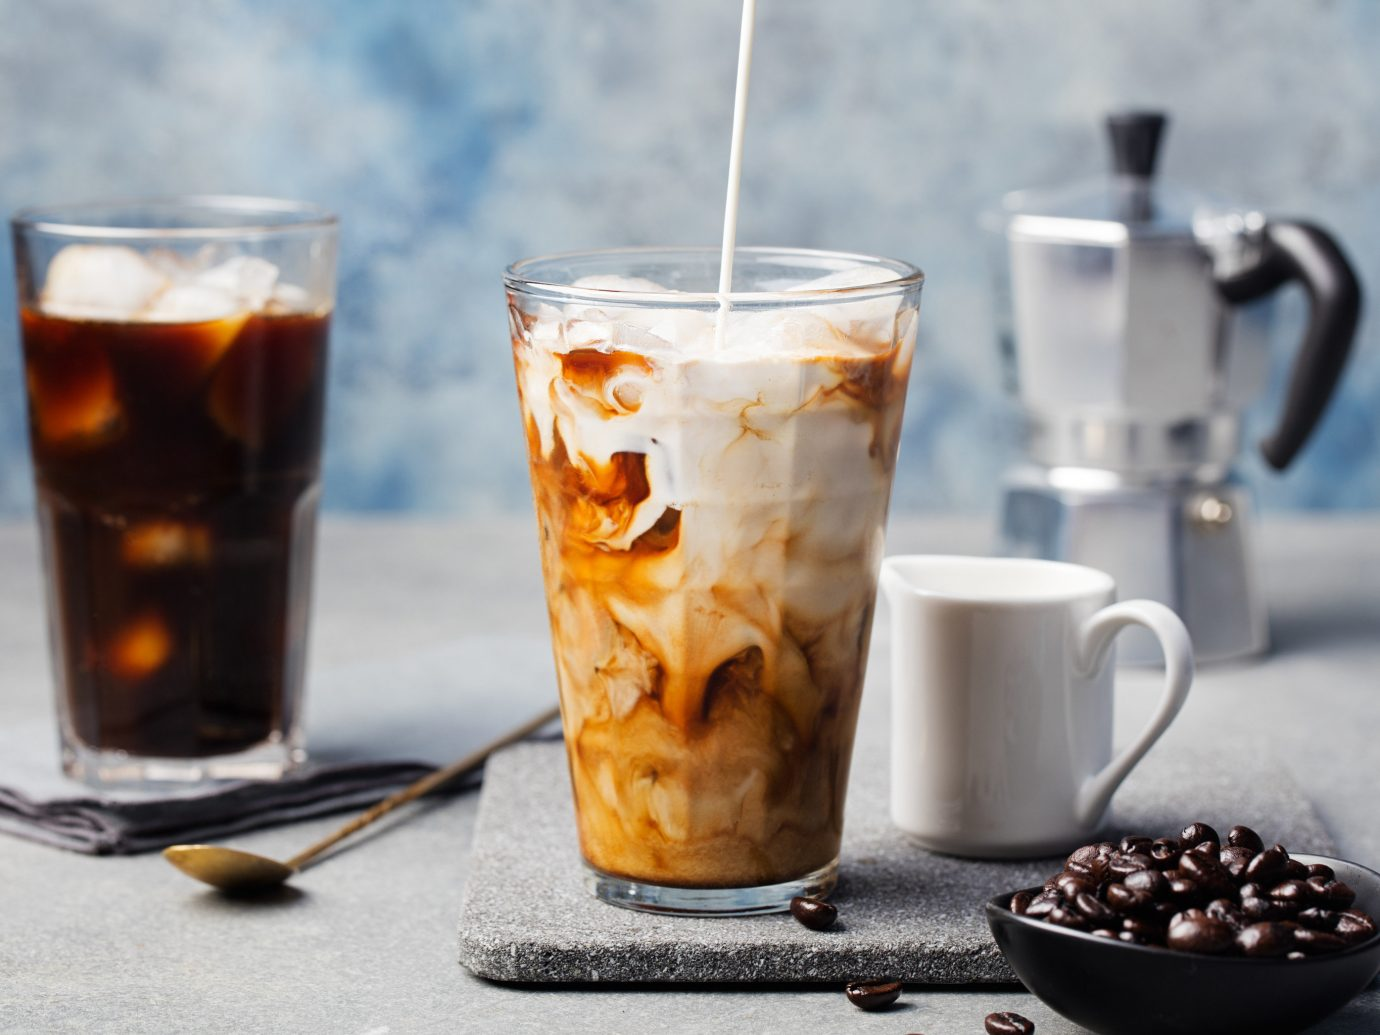 Food + Drink Offbeat Travel Trends cup coffee table Drink food beverage meal produce breakfast dish espresso iced coffee pitcher fresh